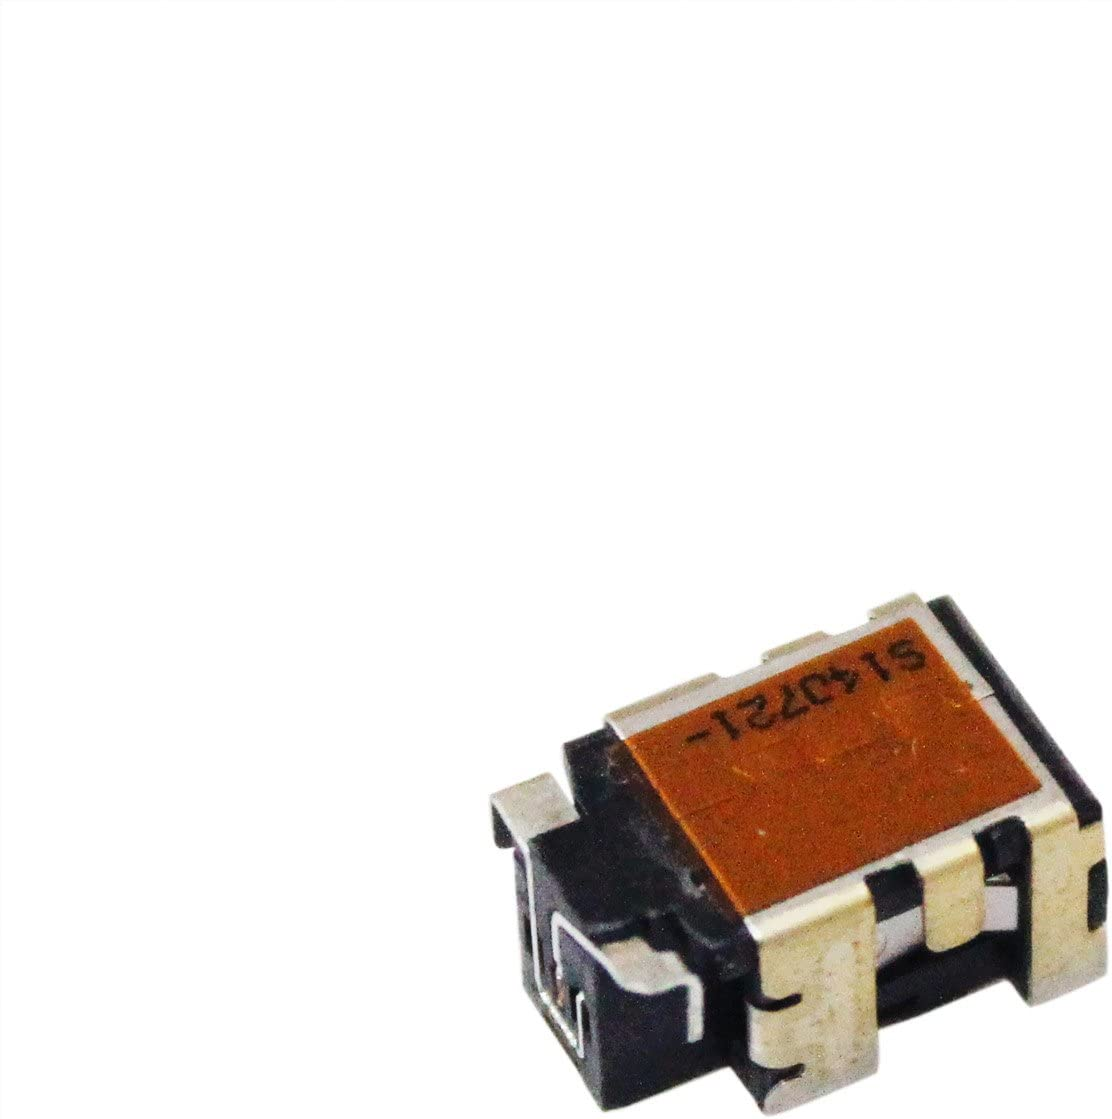 Suyitai DC in Power Jack Socket Port Replacement for HP ZBook 15u G3 Mobile Workstation 839233-601 ZBook Studio G4 Mobile Workstation Folio 1030 G1 1020 G1 M-5Y71 ProBook 640 650 G2